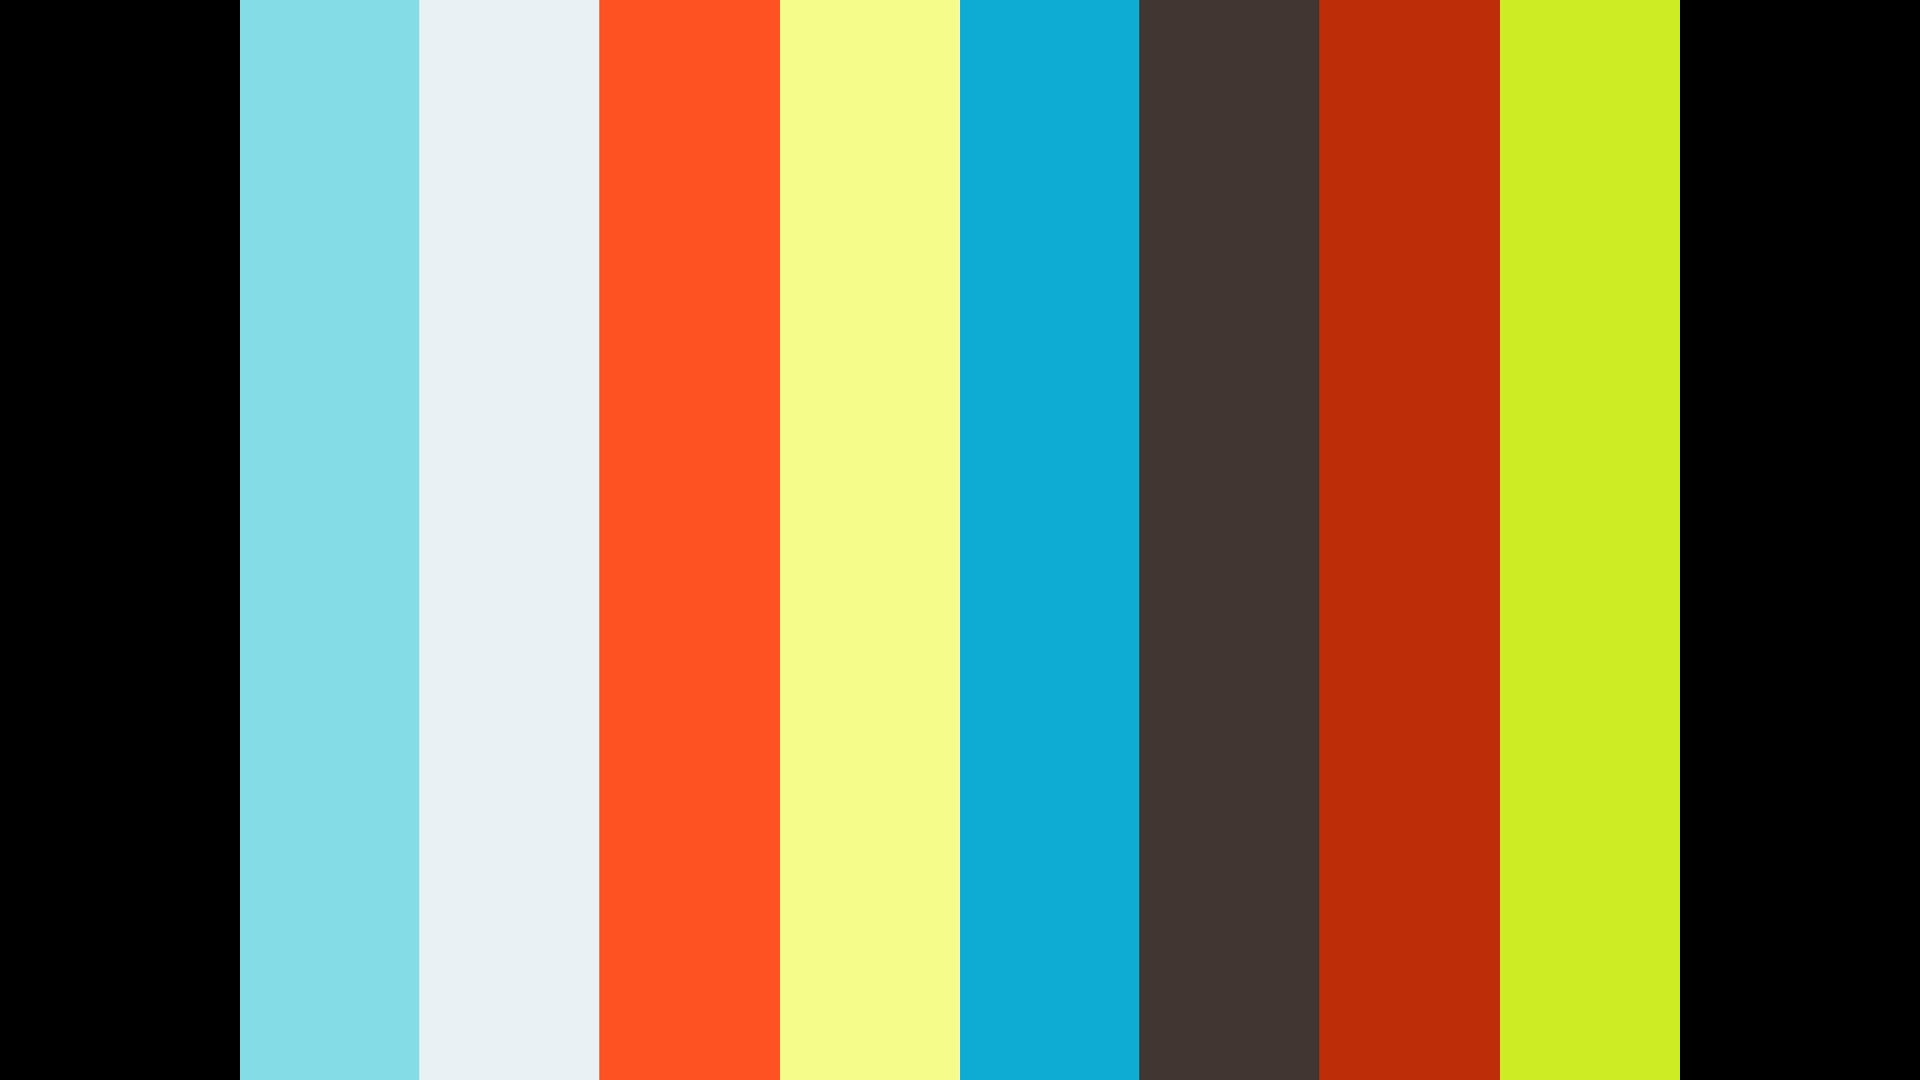 Lavanderia a Vapore 2018 - Together we dance - Giornata Internazionale Unesco della Danza - RE-ROSAS